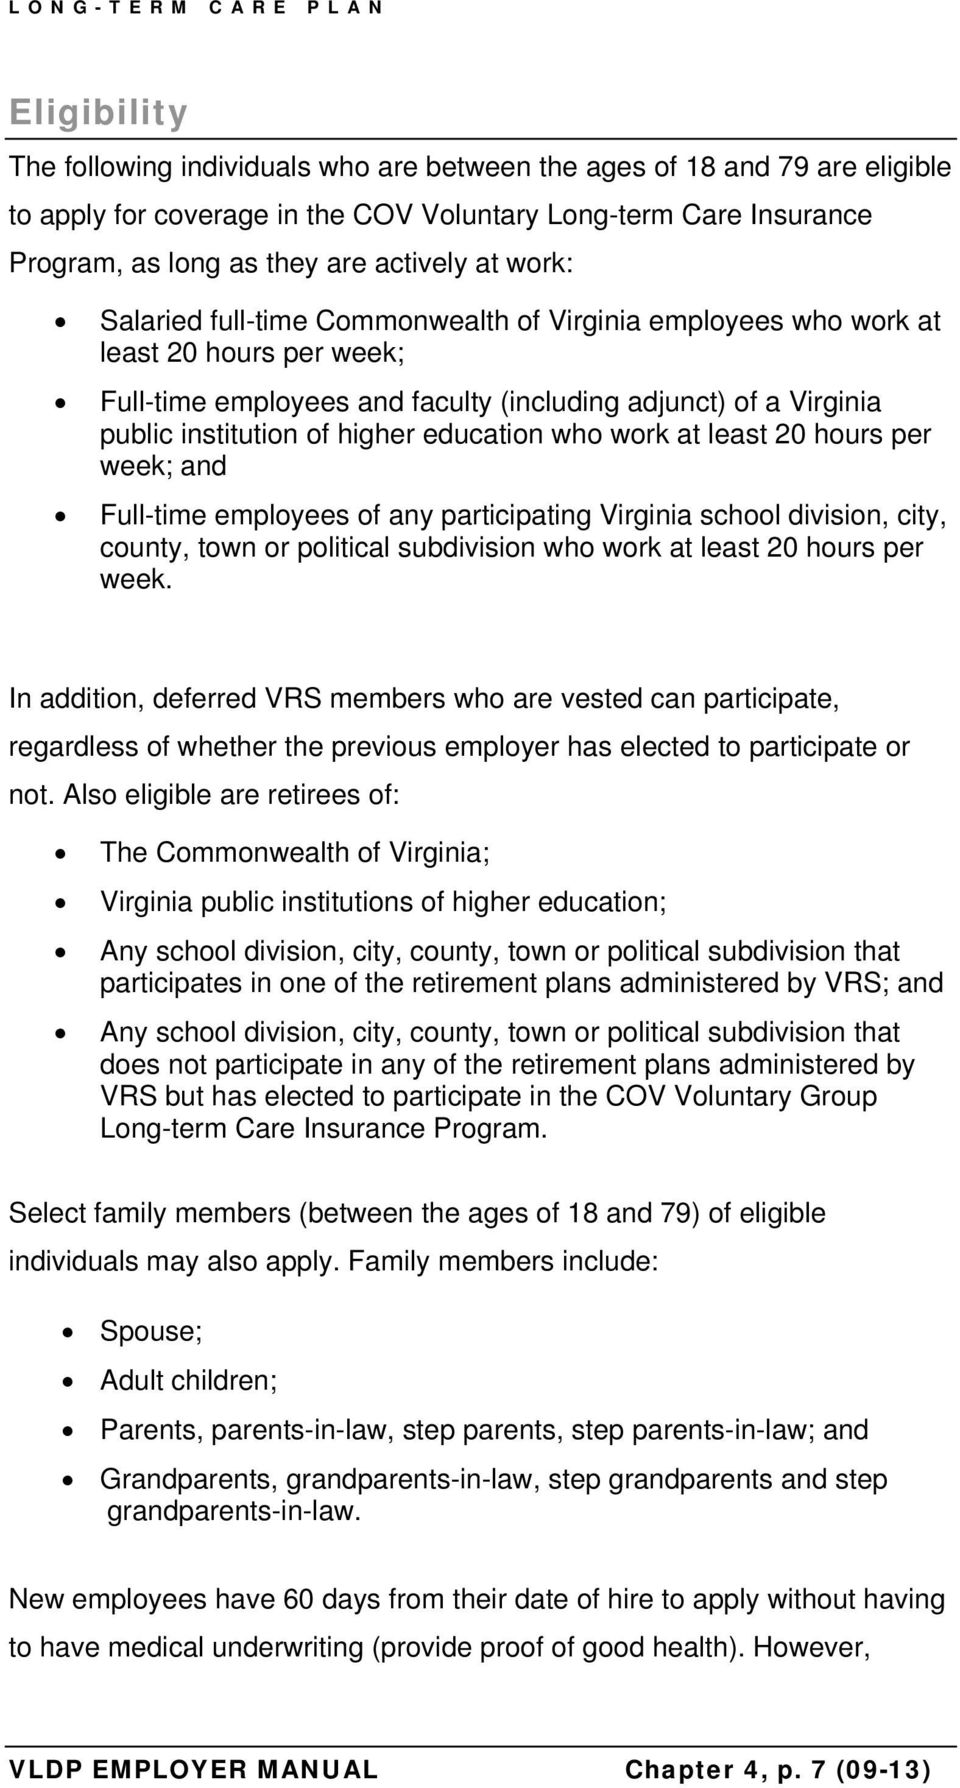 education who work at least 20 hours per week; and Full-time employees of any participating Virginia school division, city, county, town or political subdivision who work at least 20 hours per week.